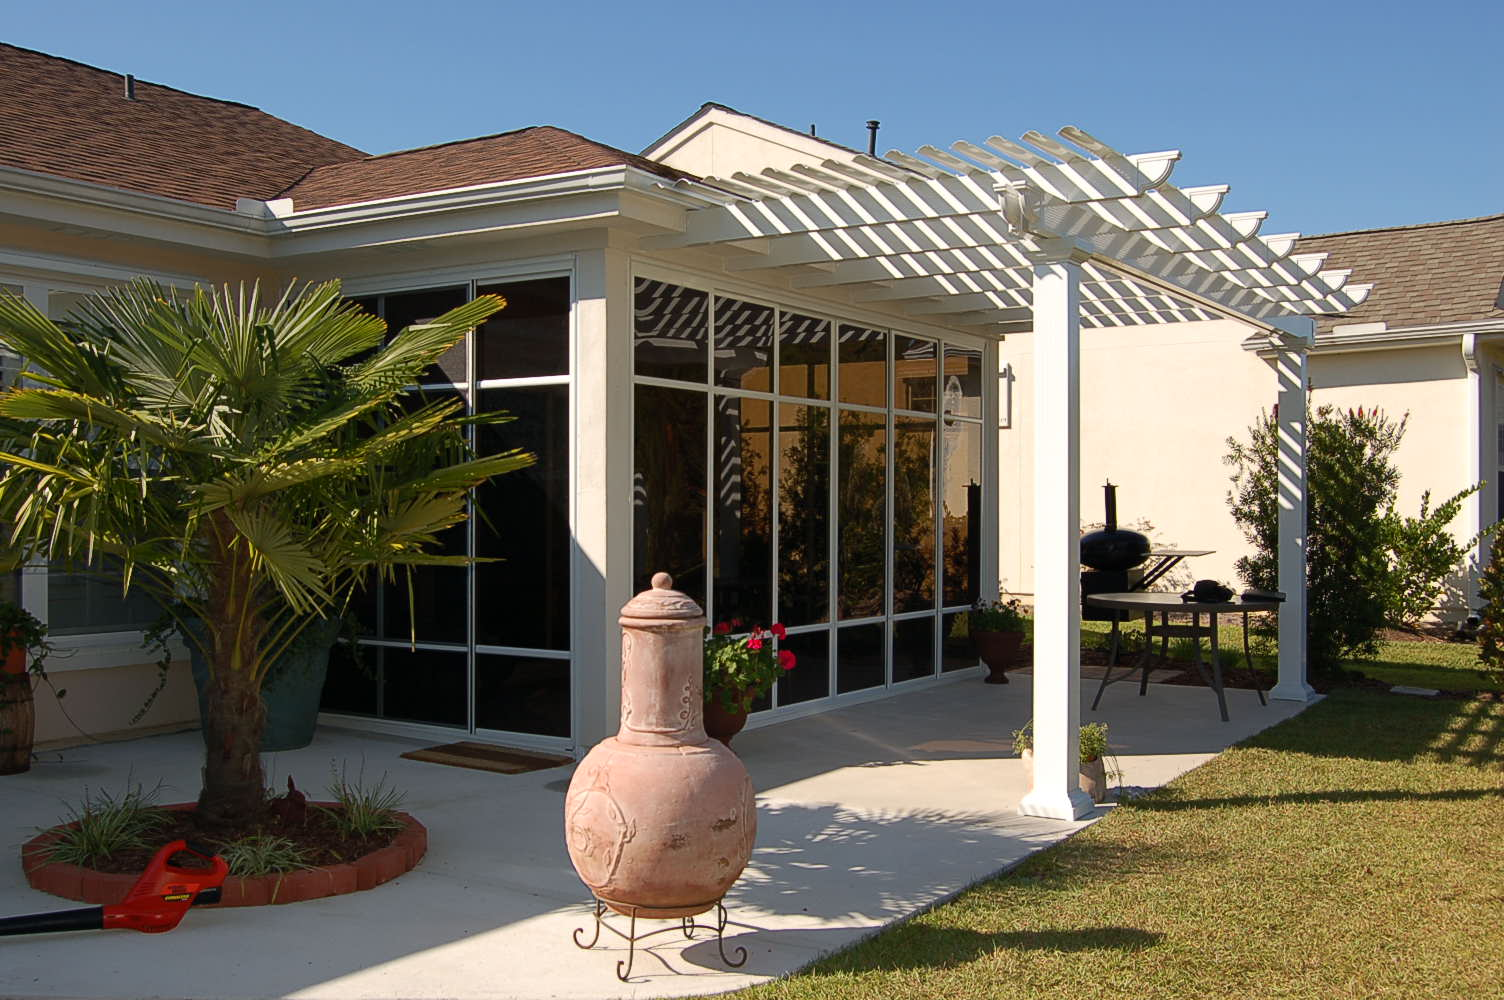 Astounding images pergola attached to house garden landscape for Sunroom attached to house